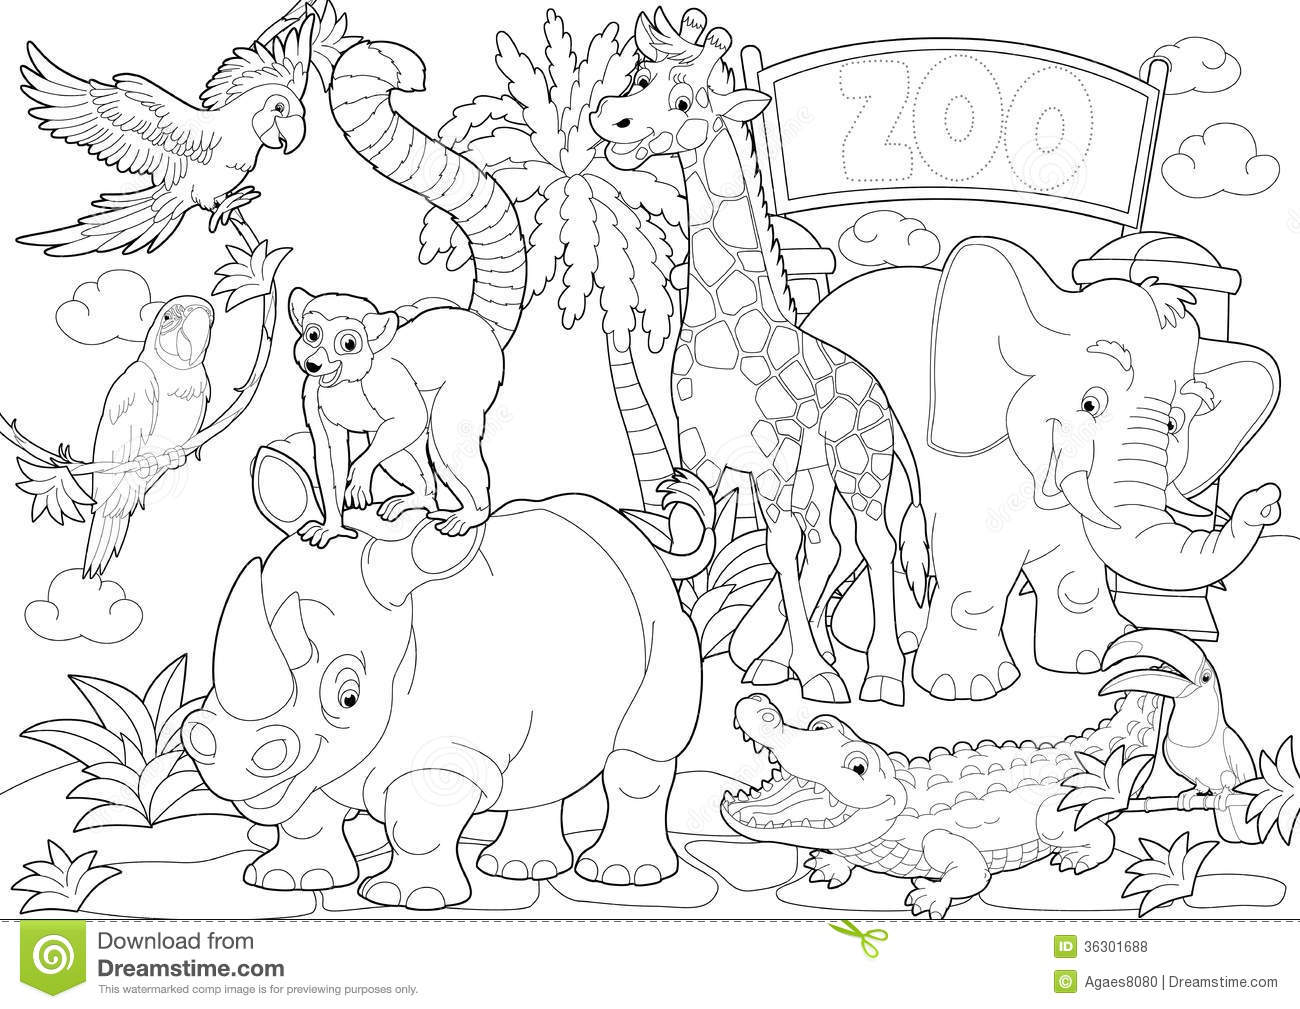 Coloring Page   The Zoo   Illustration For The Children. Contur, Clip.